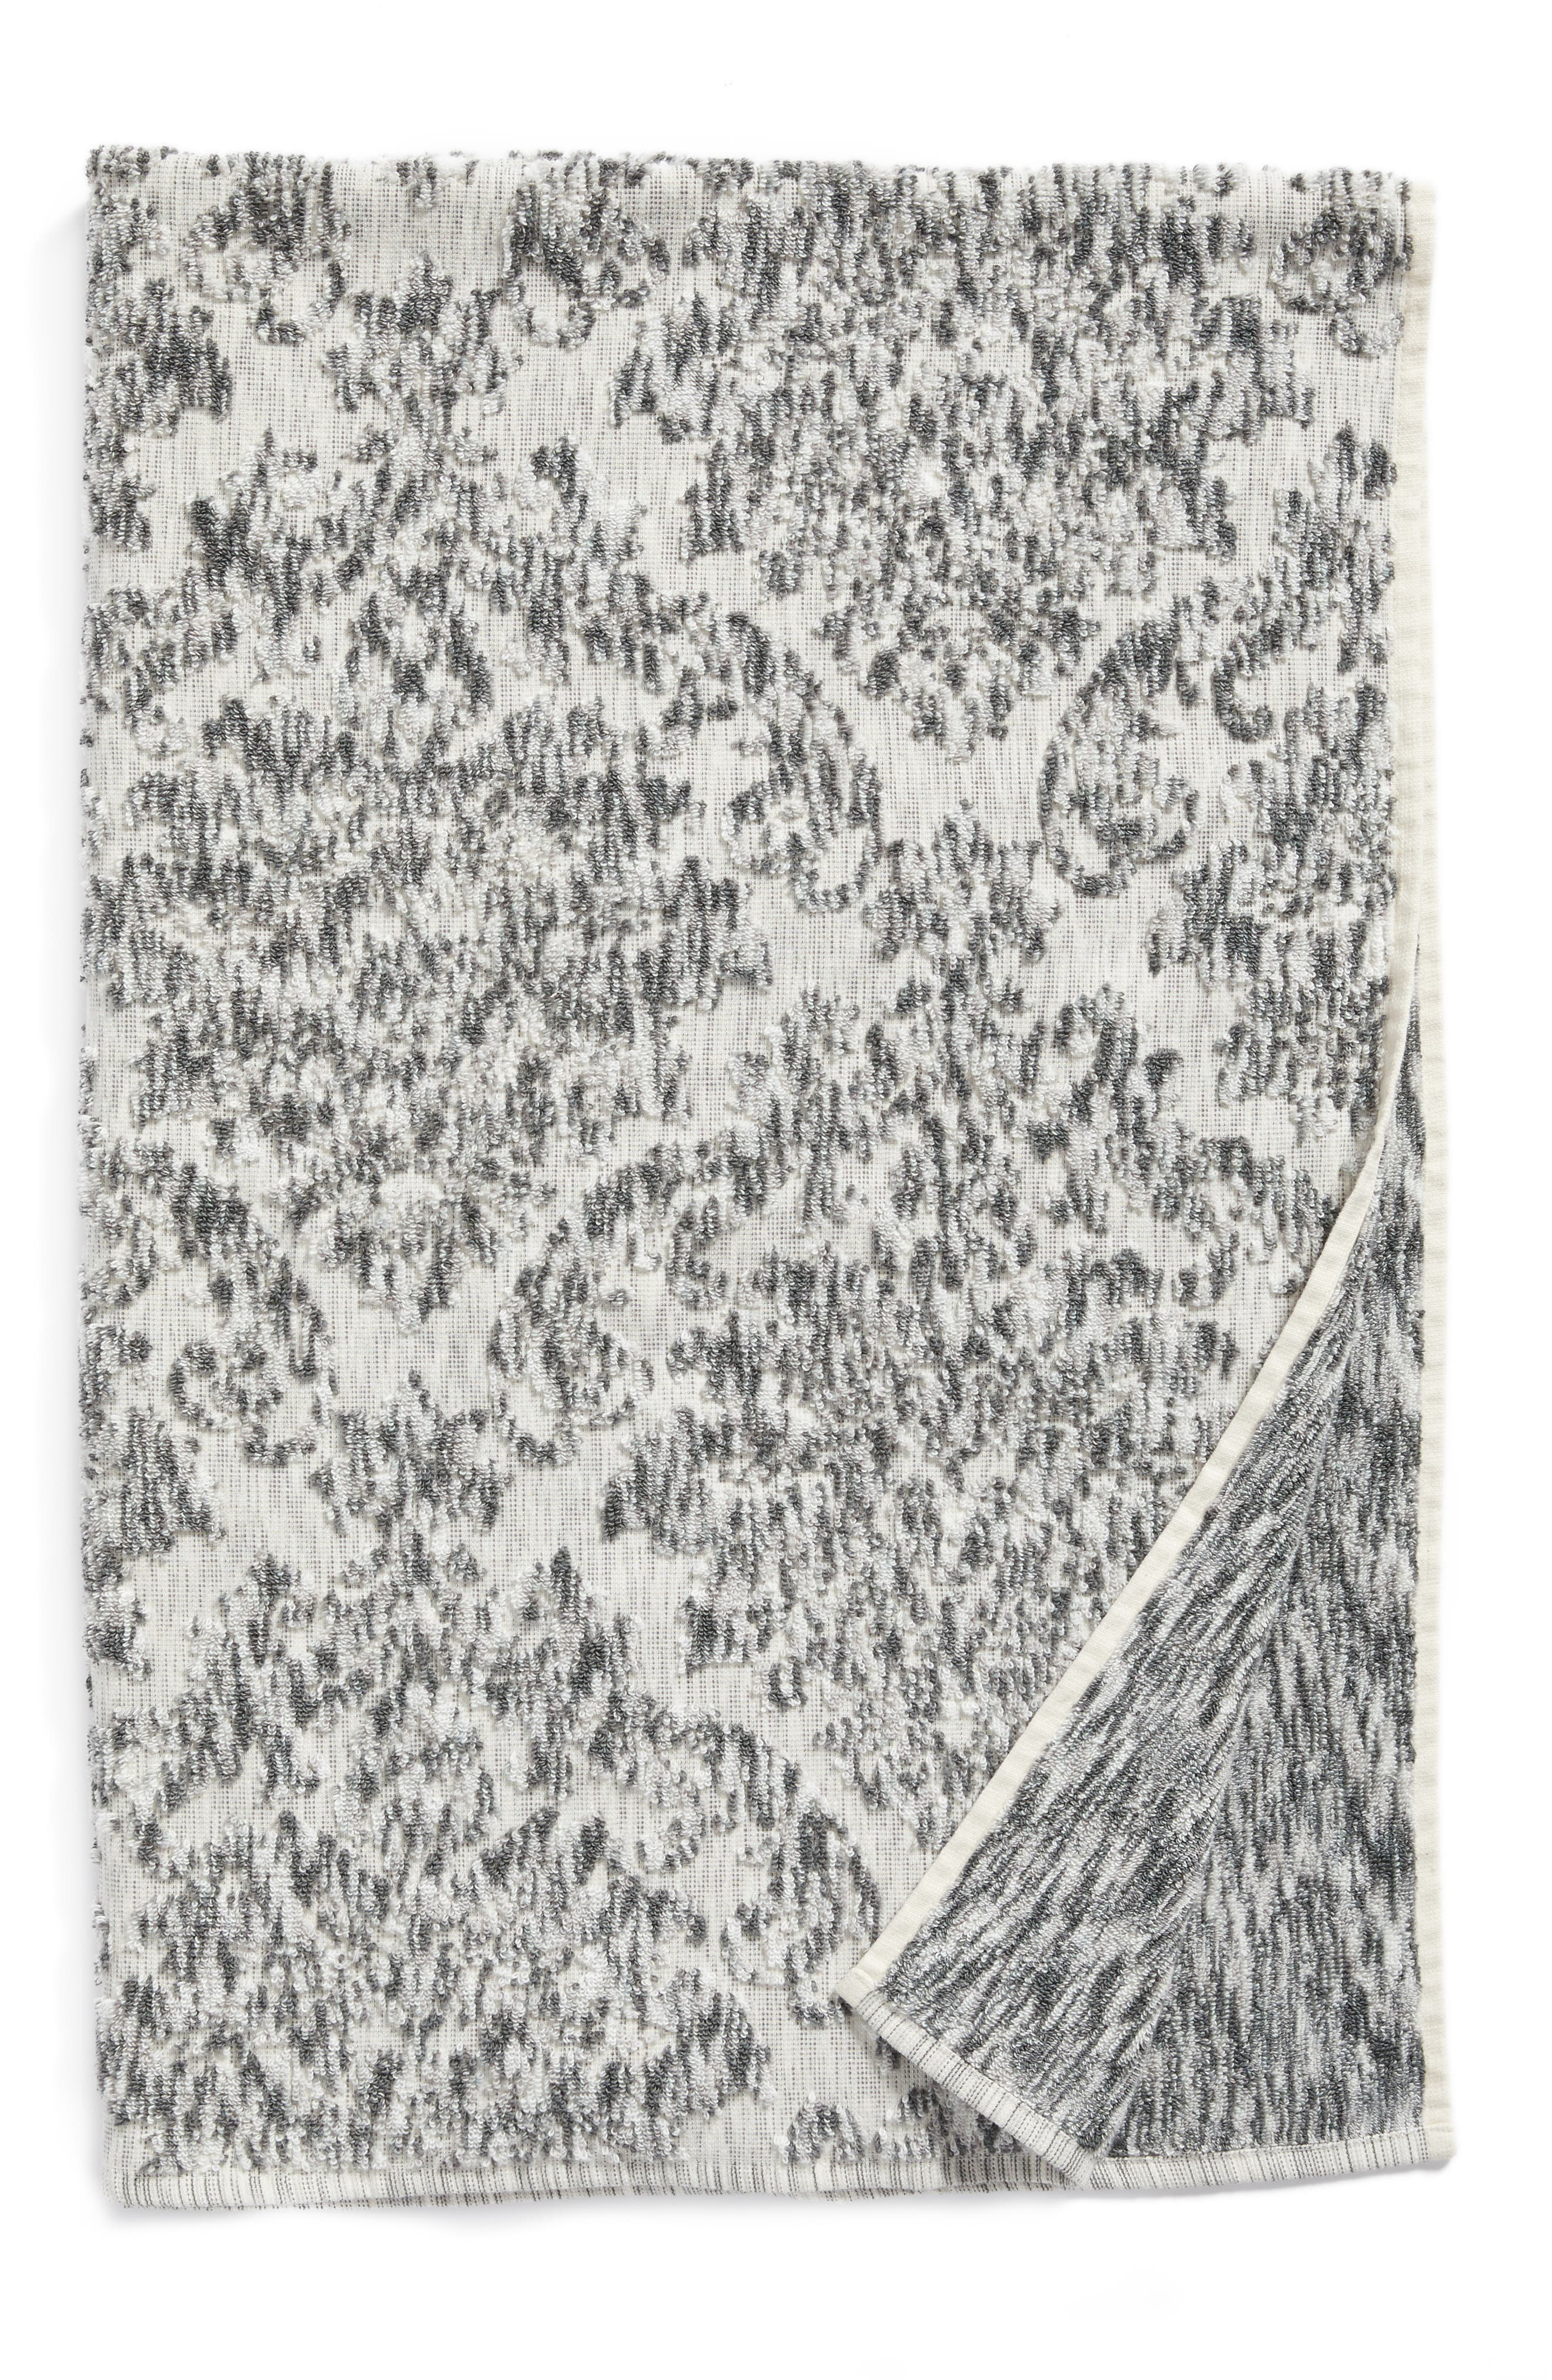 Easton Bath Towel,                         Main,                         color, GREY FROST MULTI